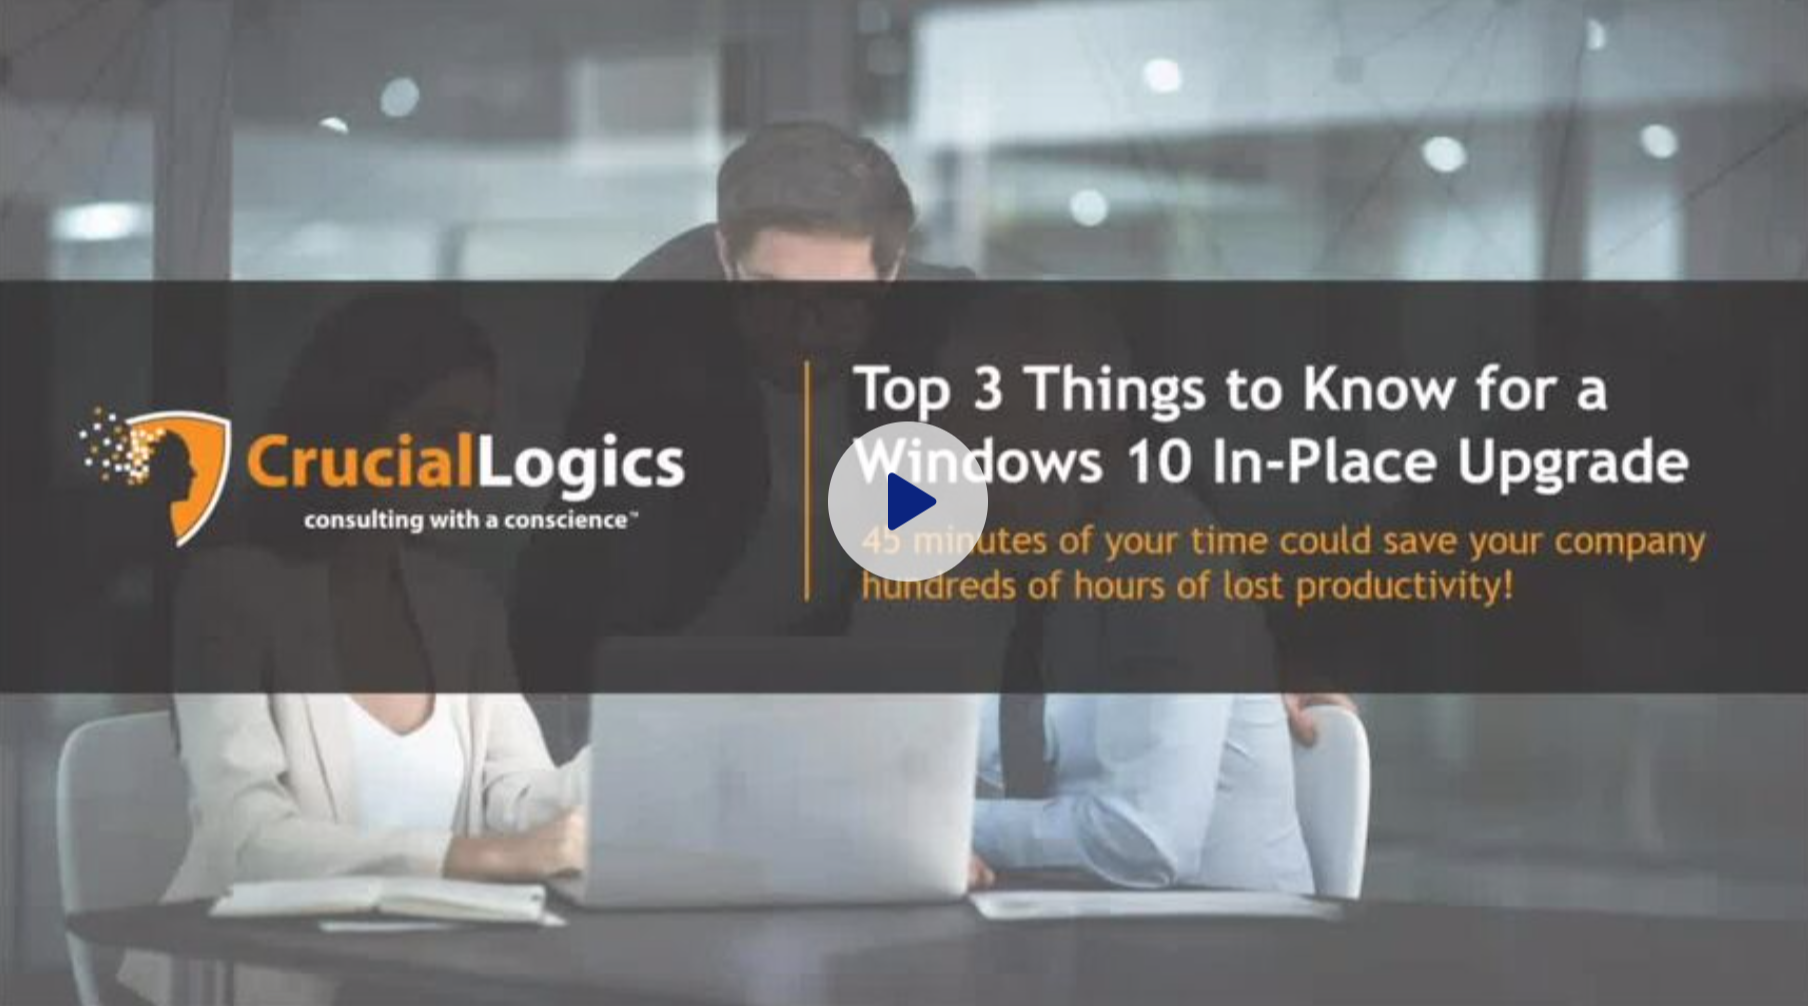 Top 3 Things to Know for a Windows 10 In-Place Upgrade